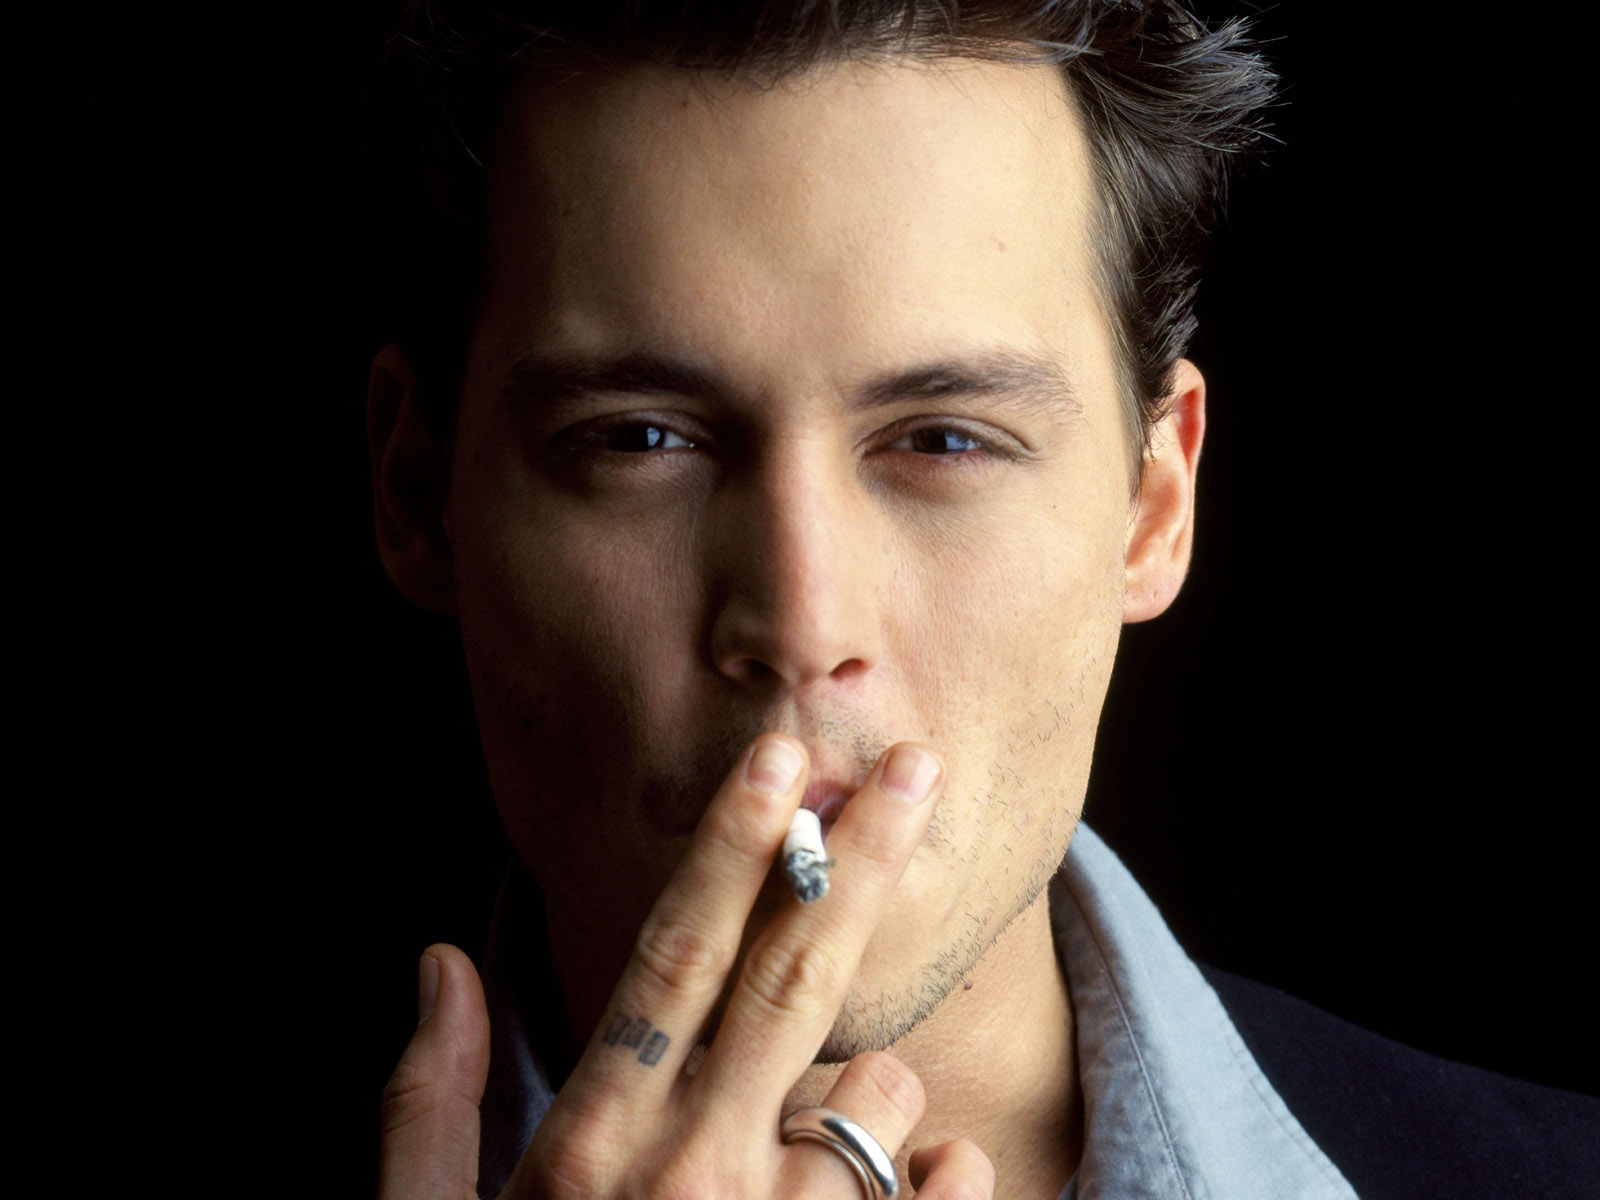 johnny depp wallpaper 1723